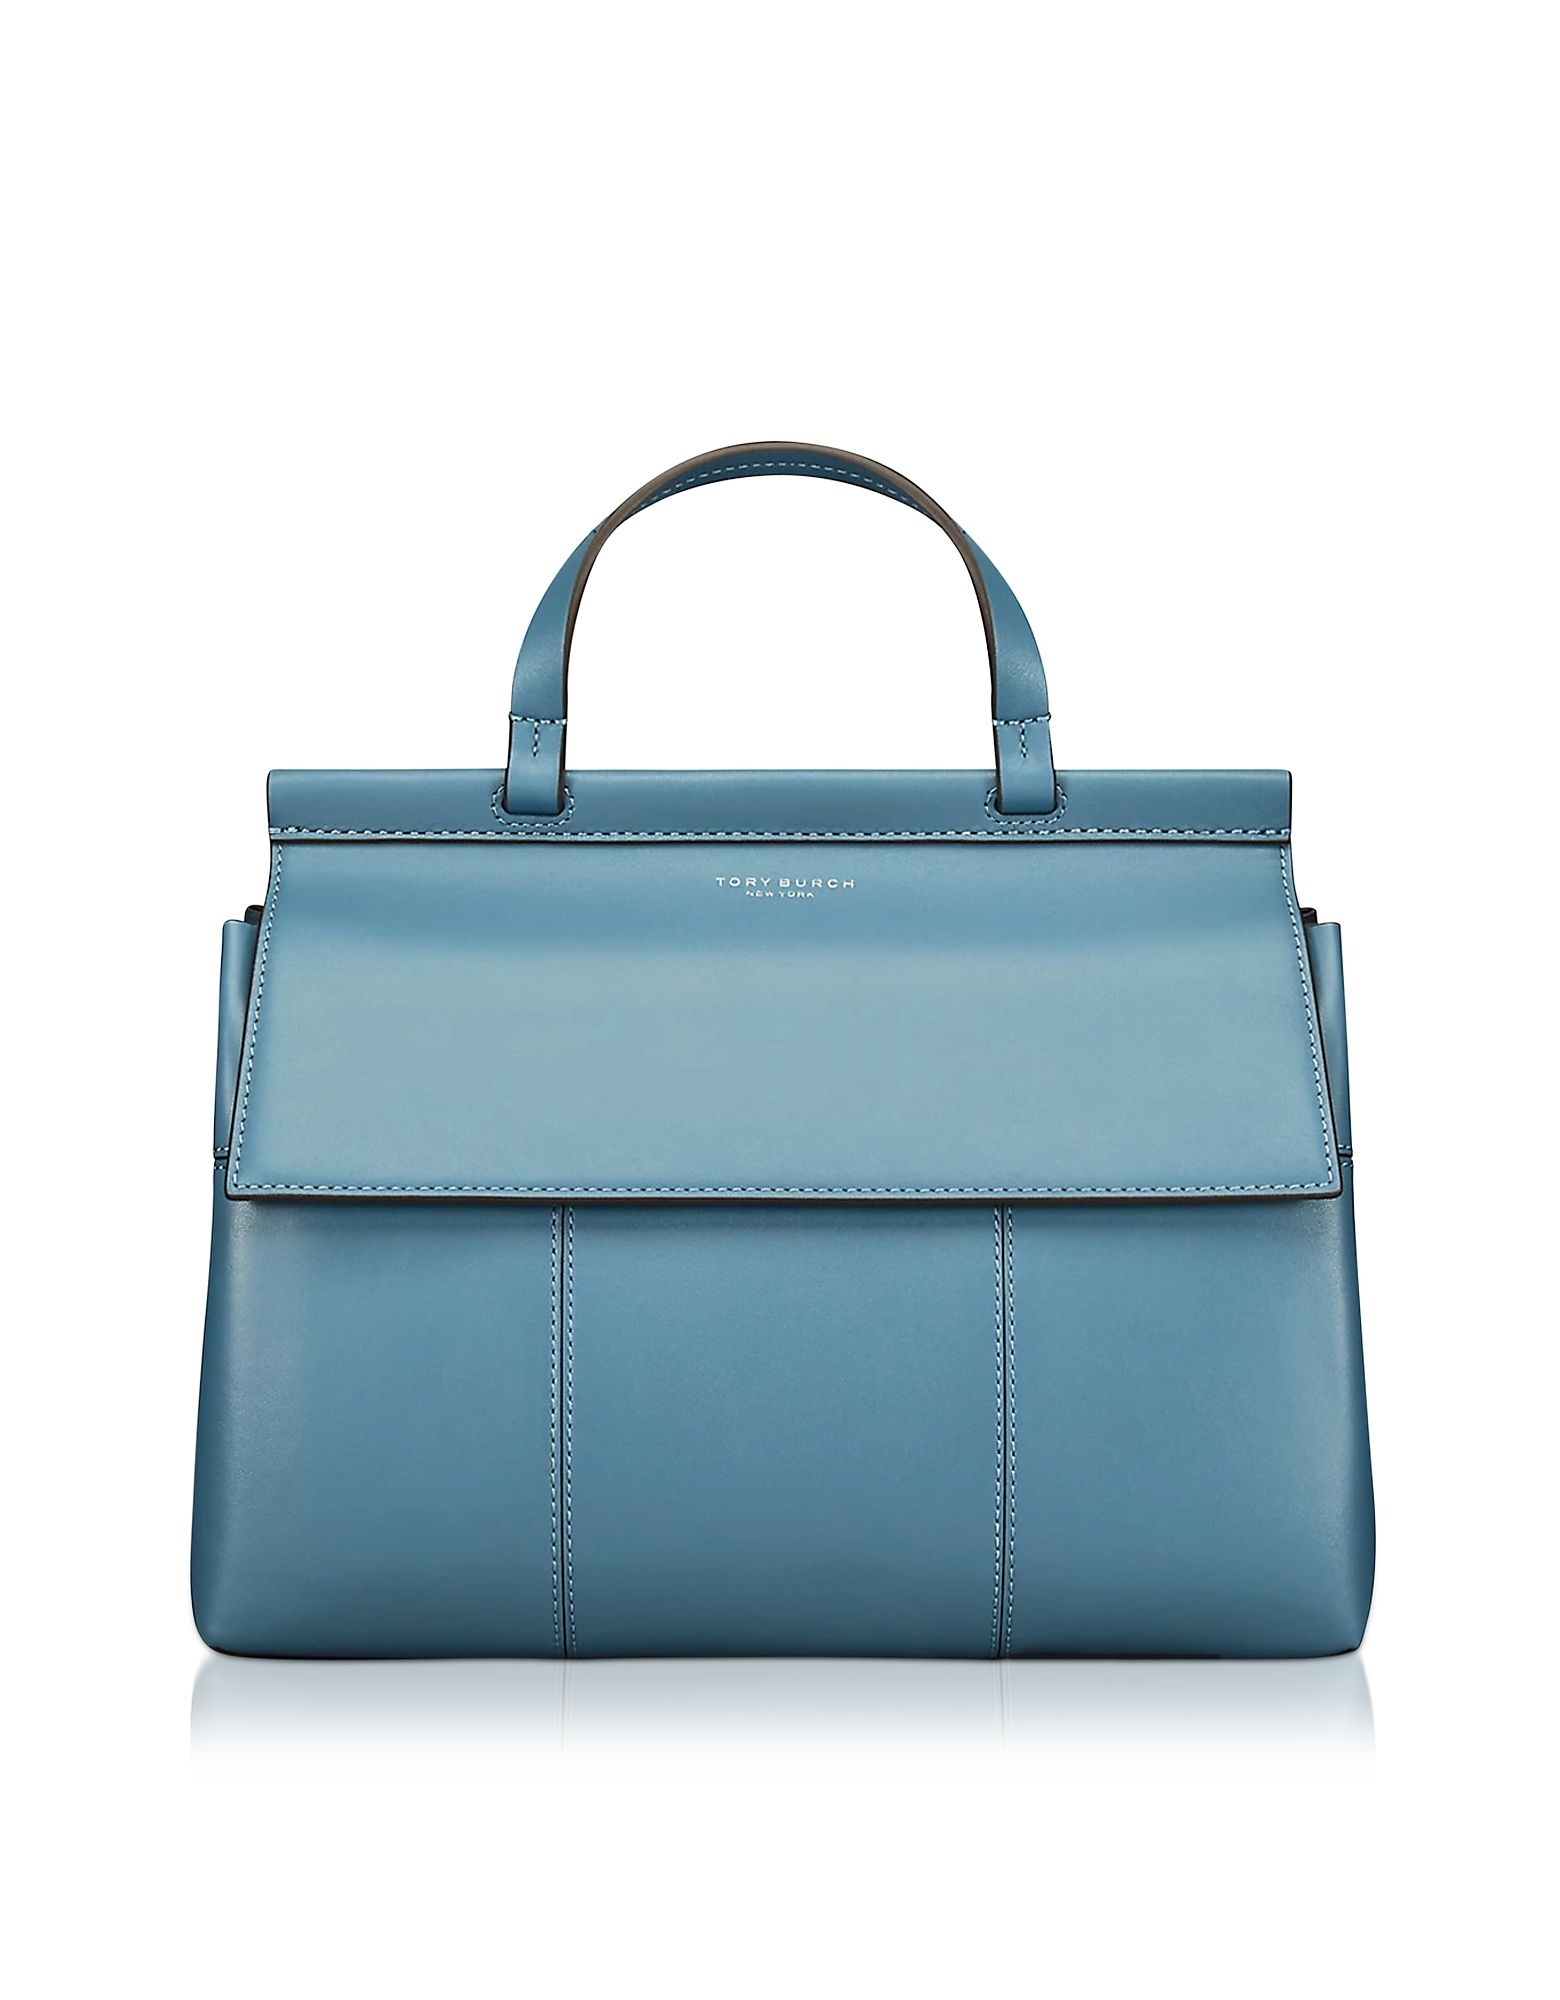 9fb15602fe6b TORY BURCH BLOCK-T BLUE YONDER FIG LEATHER TOP HANDLE SATCHEL BAG.   toryburch  bags  leather  lining  satchel  shoulder bags  hand bags  silk